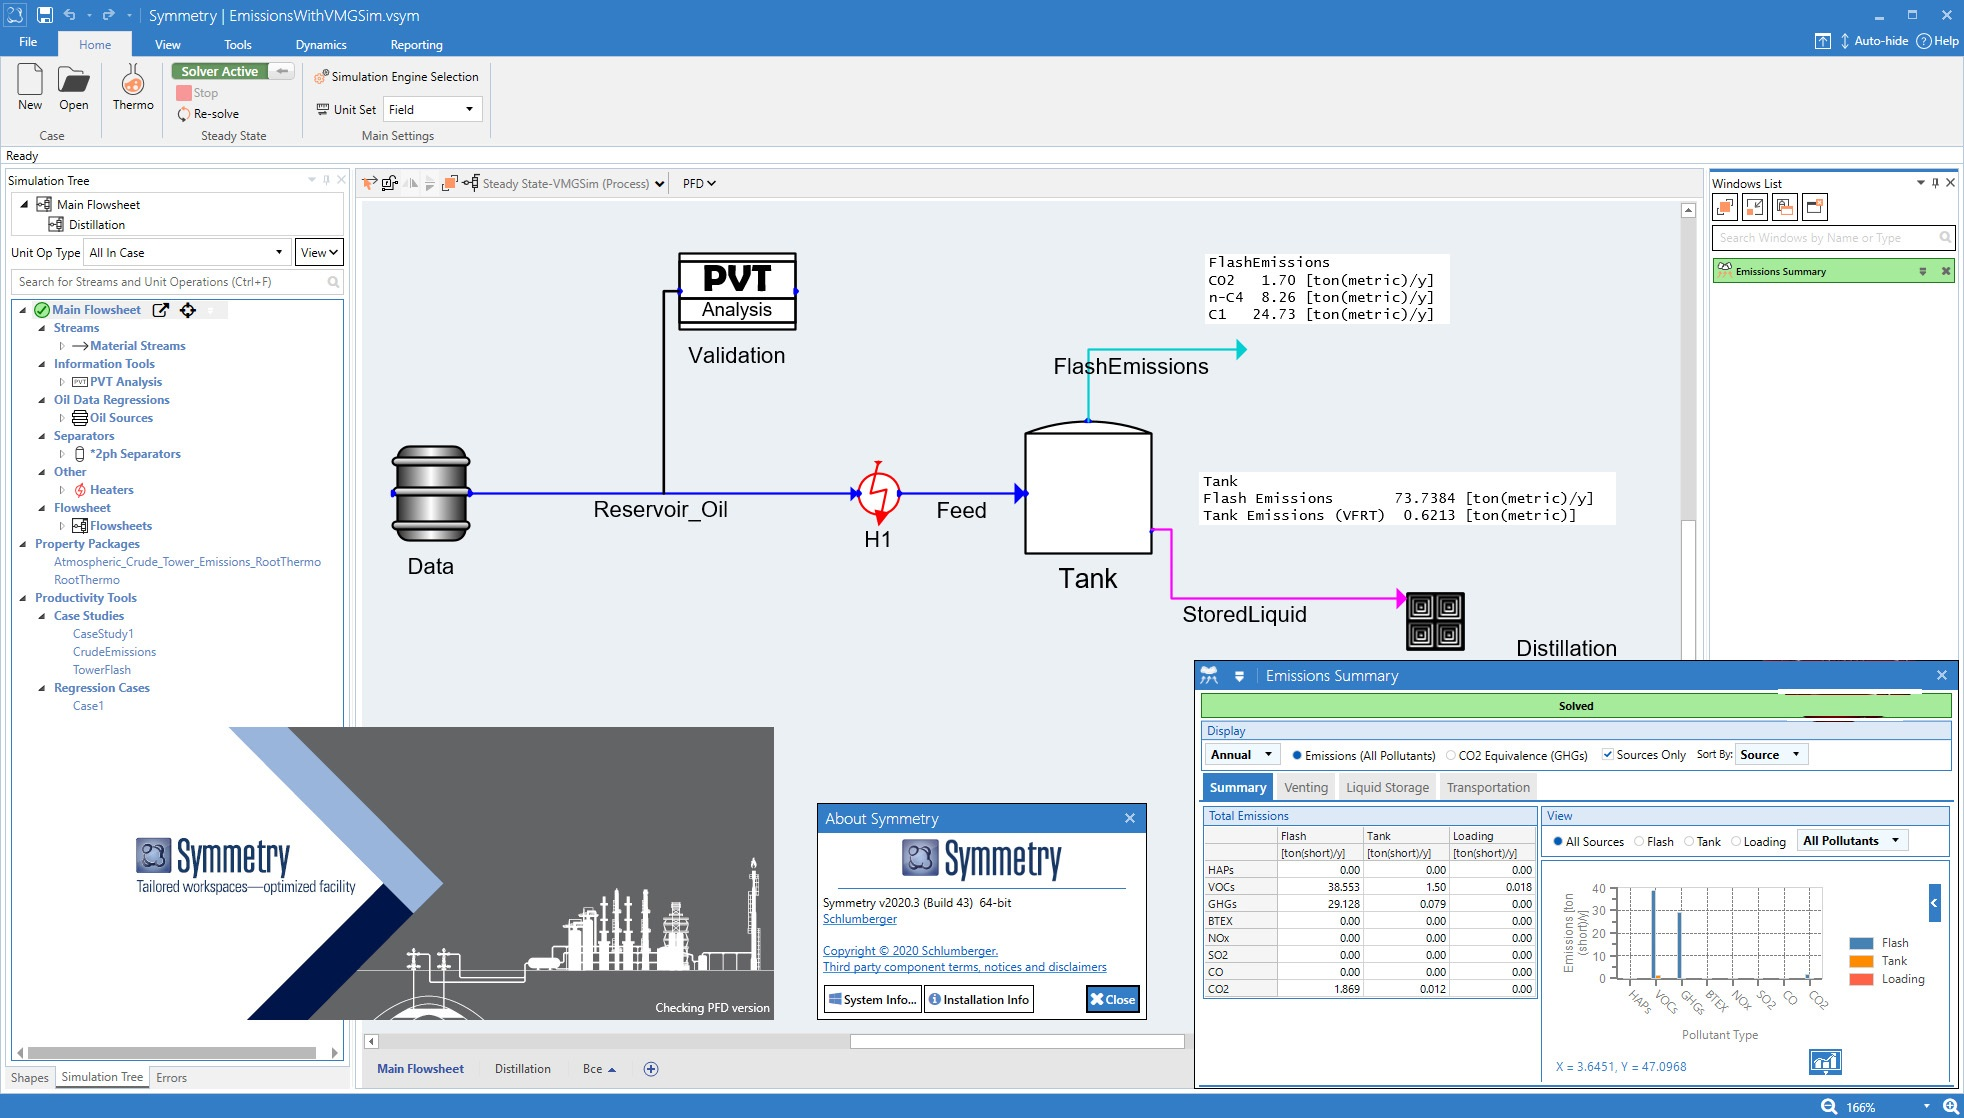 Working with Schlumberger Symmetry 2020.3 build 43 full